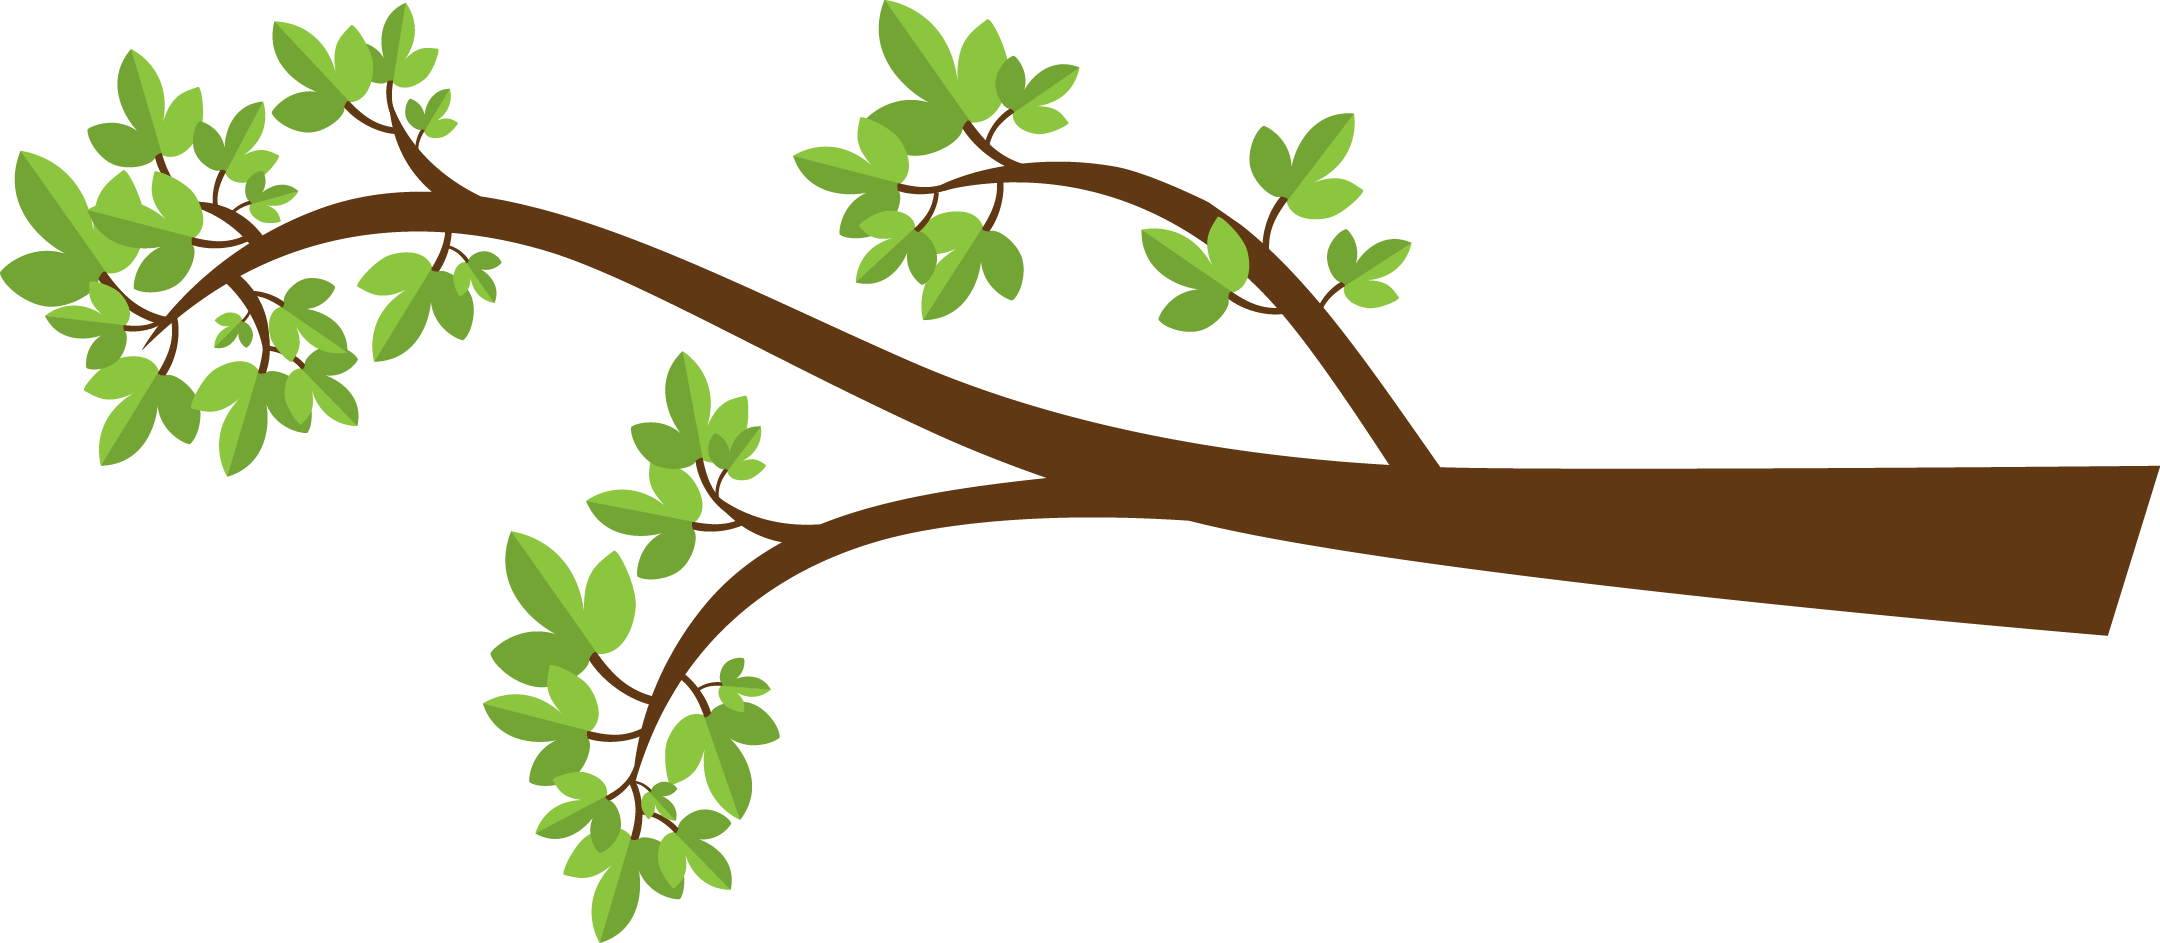 vector free stock Tree a pencil and. Branch clipart